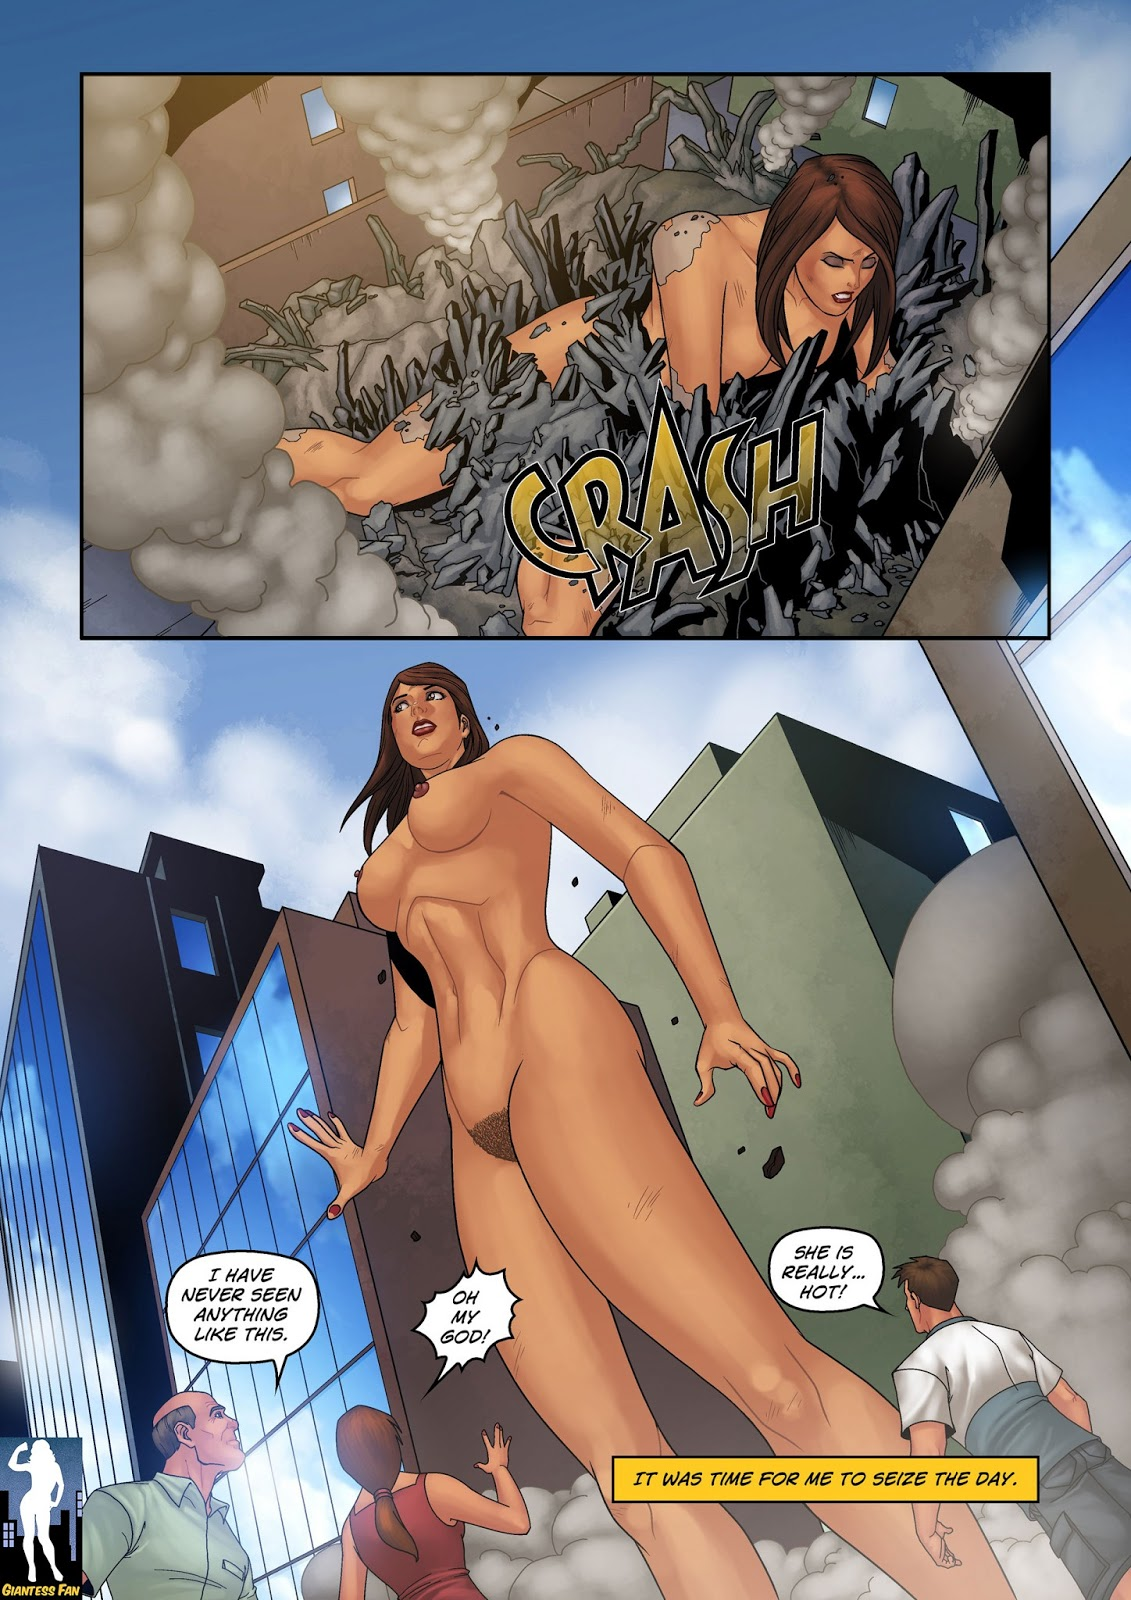 Giantess sex image adult gallery